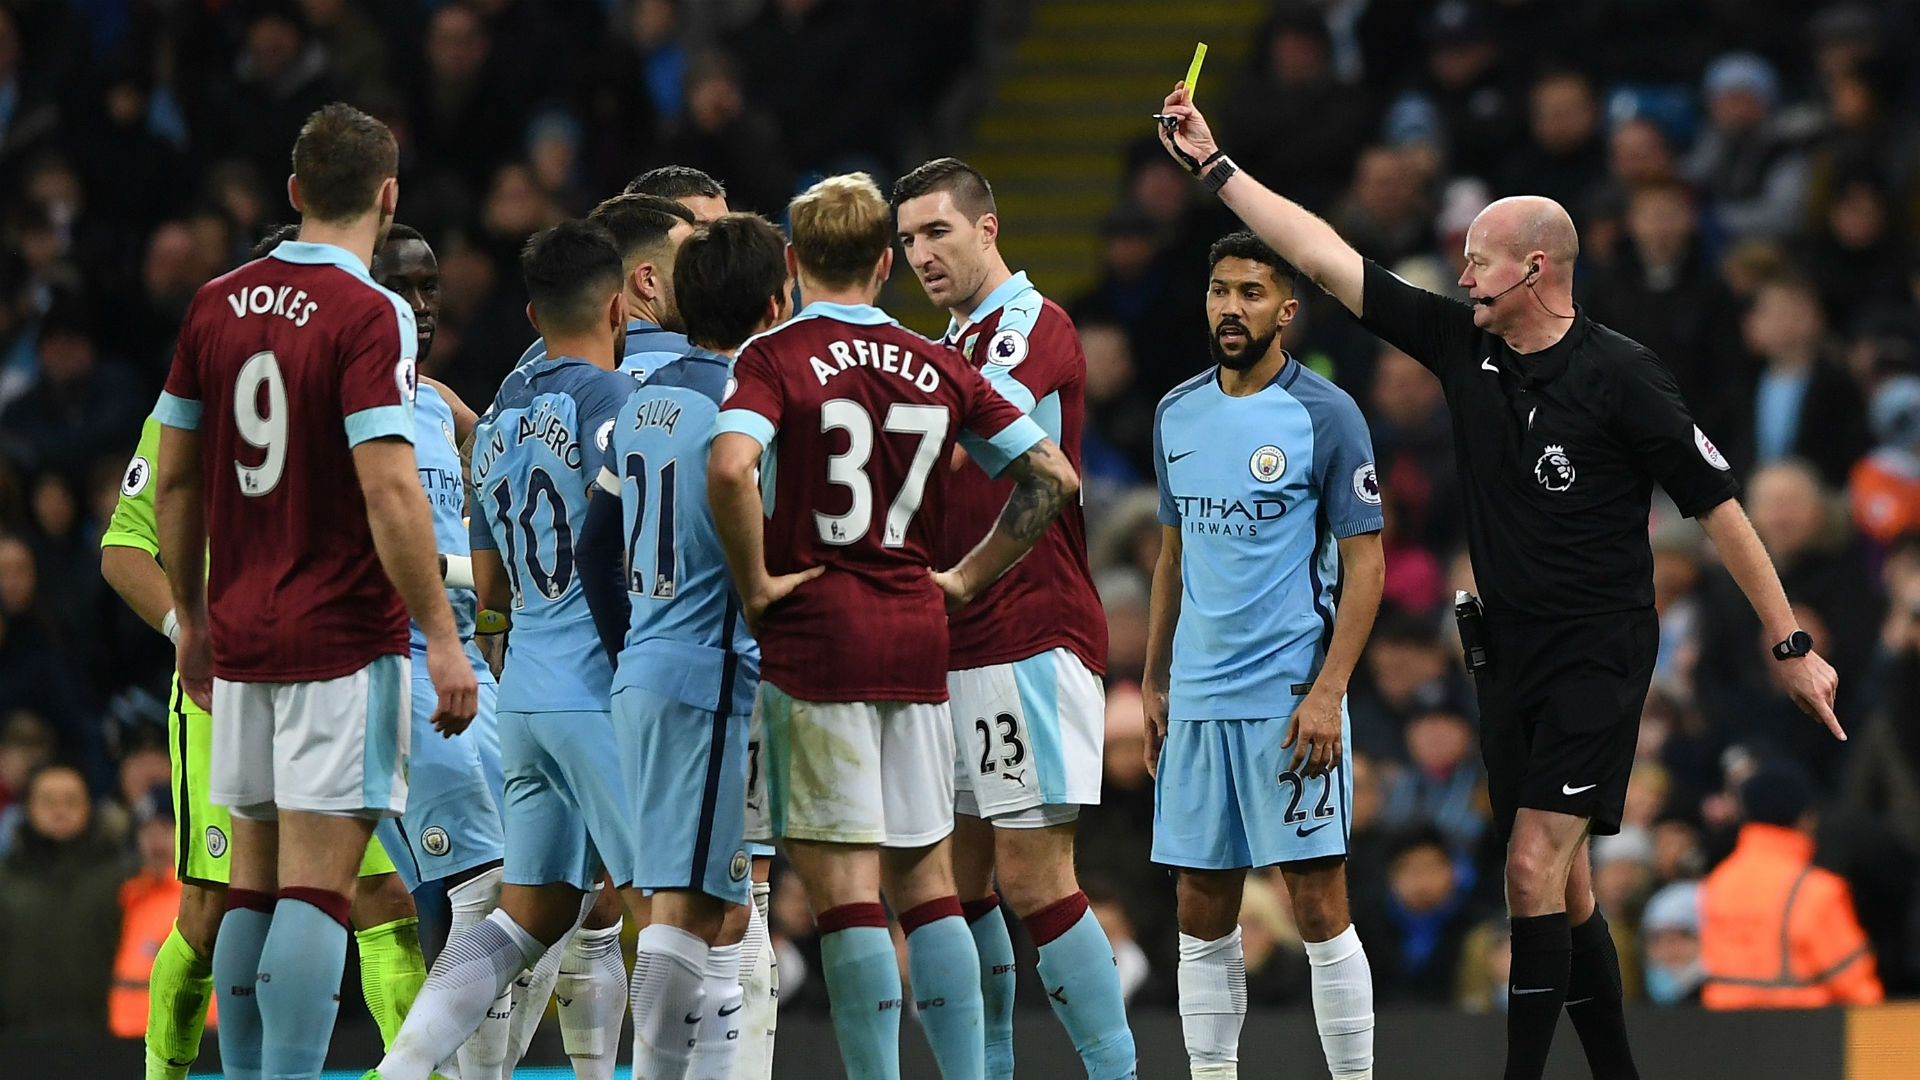 BEST TWEETS: Manchester City striker Sergio Aguero benched for Burnley game